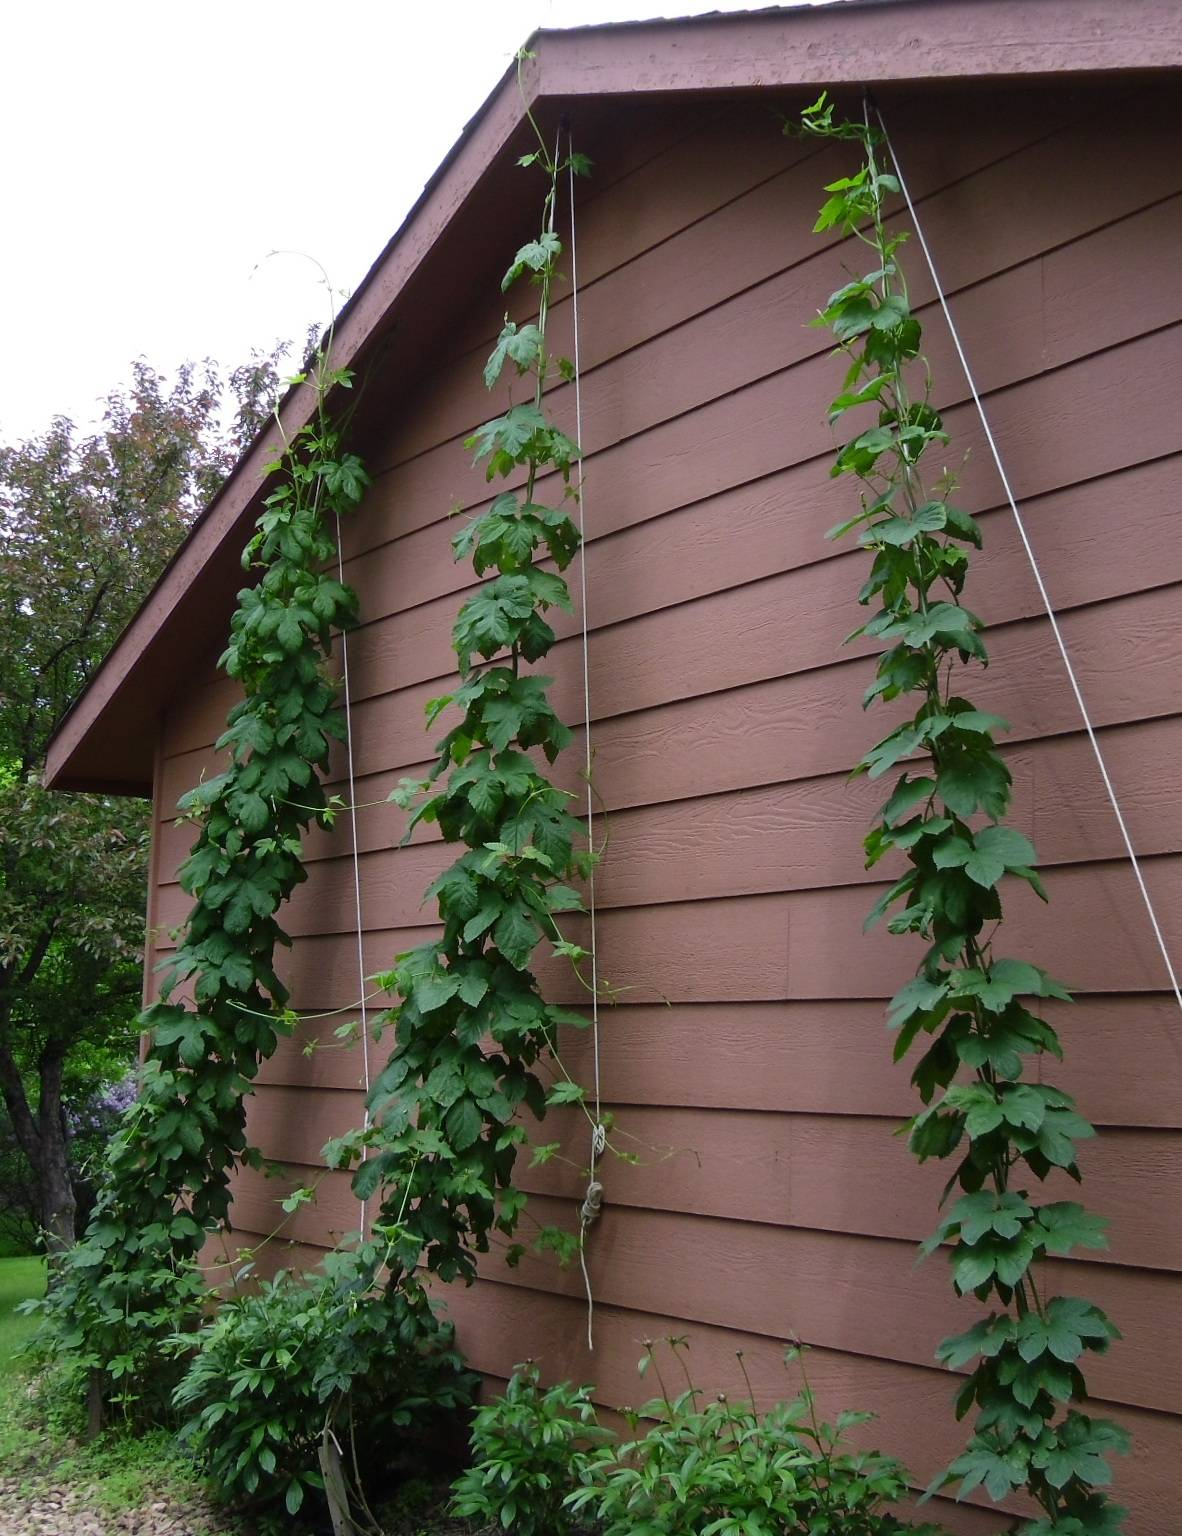 Two of the 3 hop bines are climbing over the roof (temporarily).